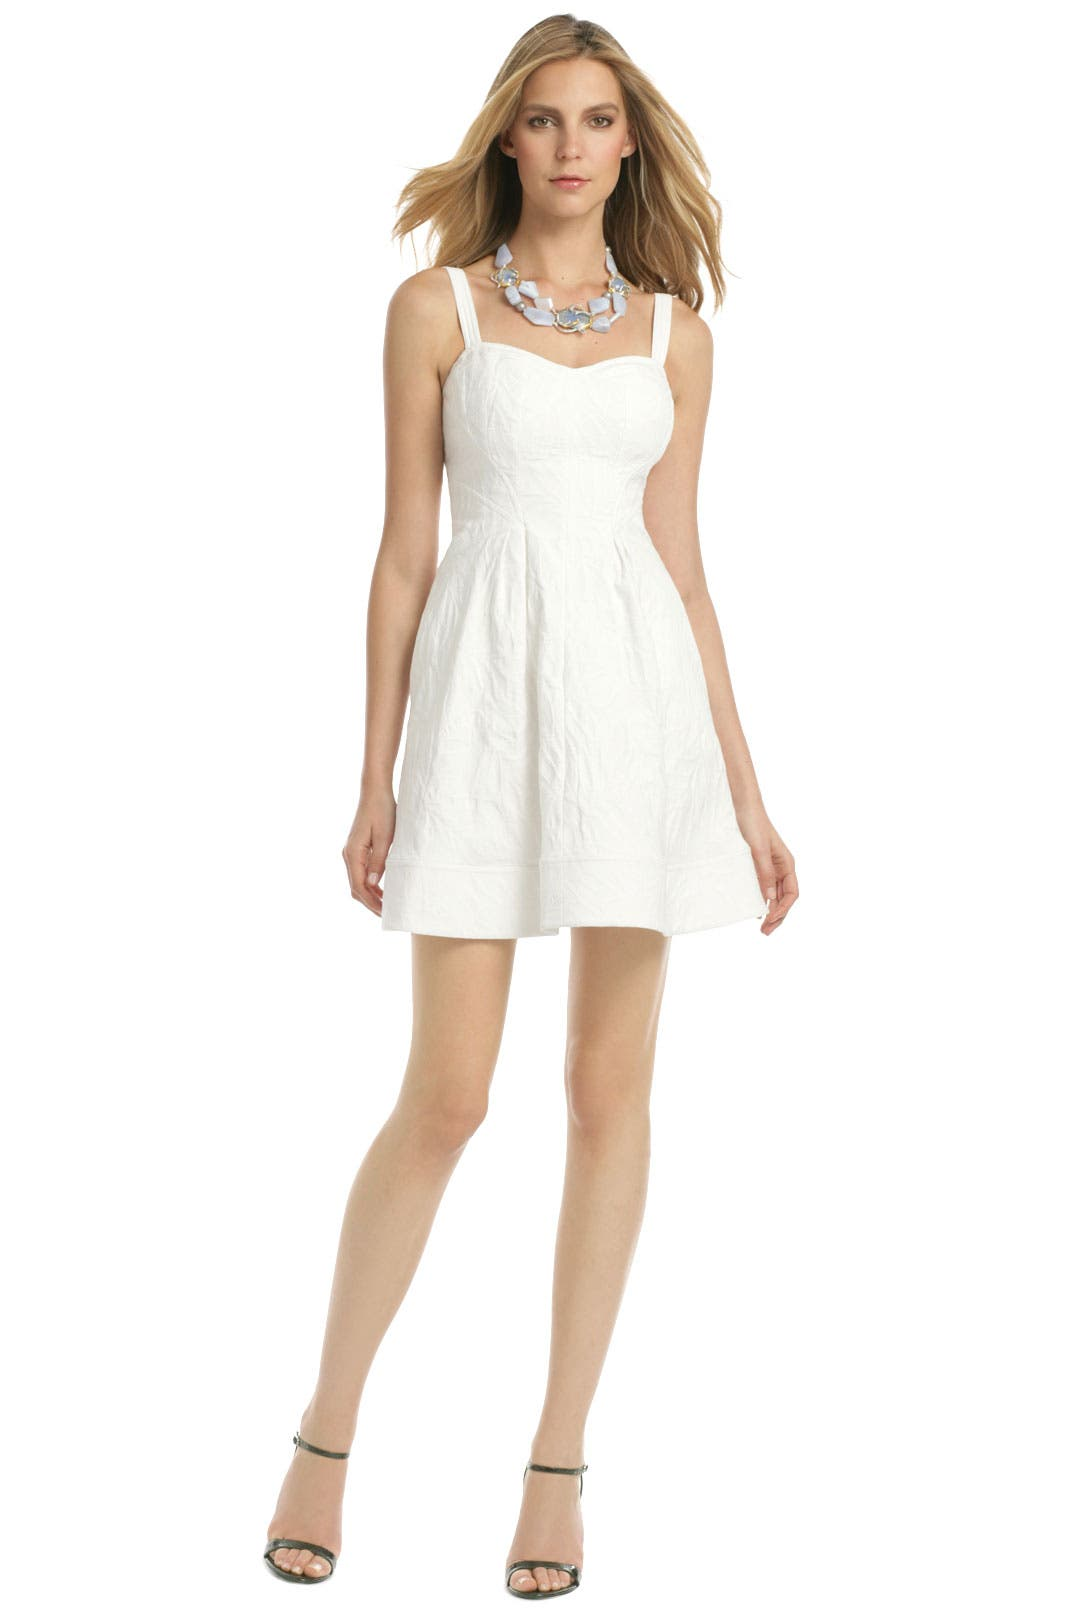 White As Snow Dress by Z Spoke Zac Posen